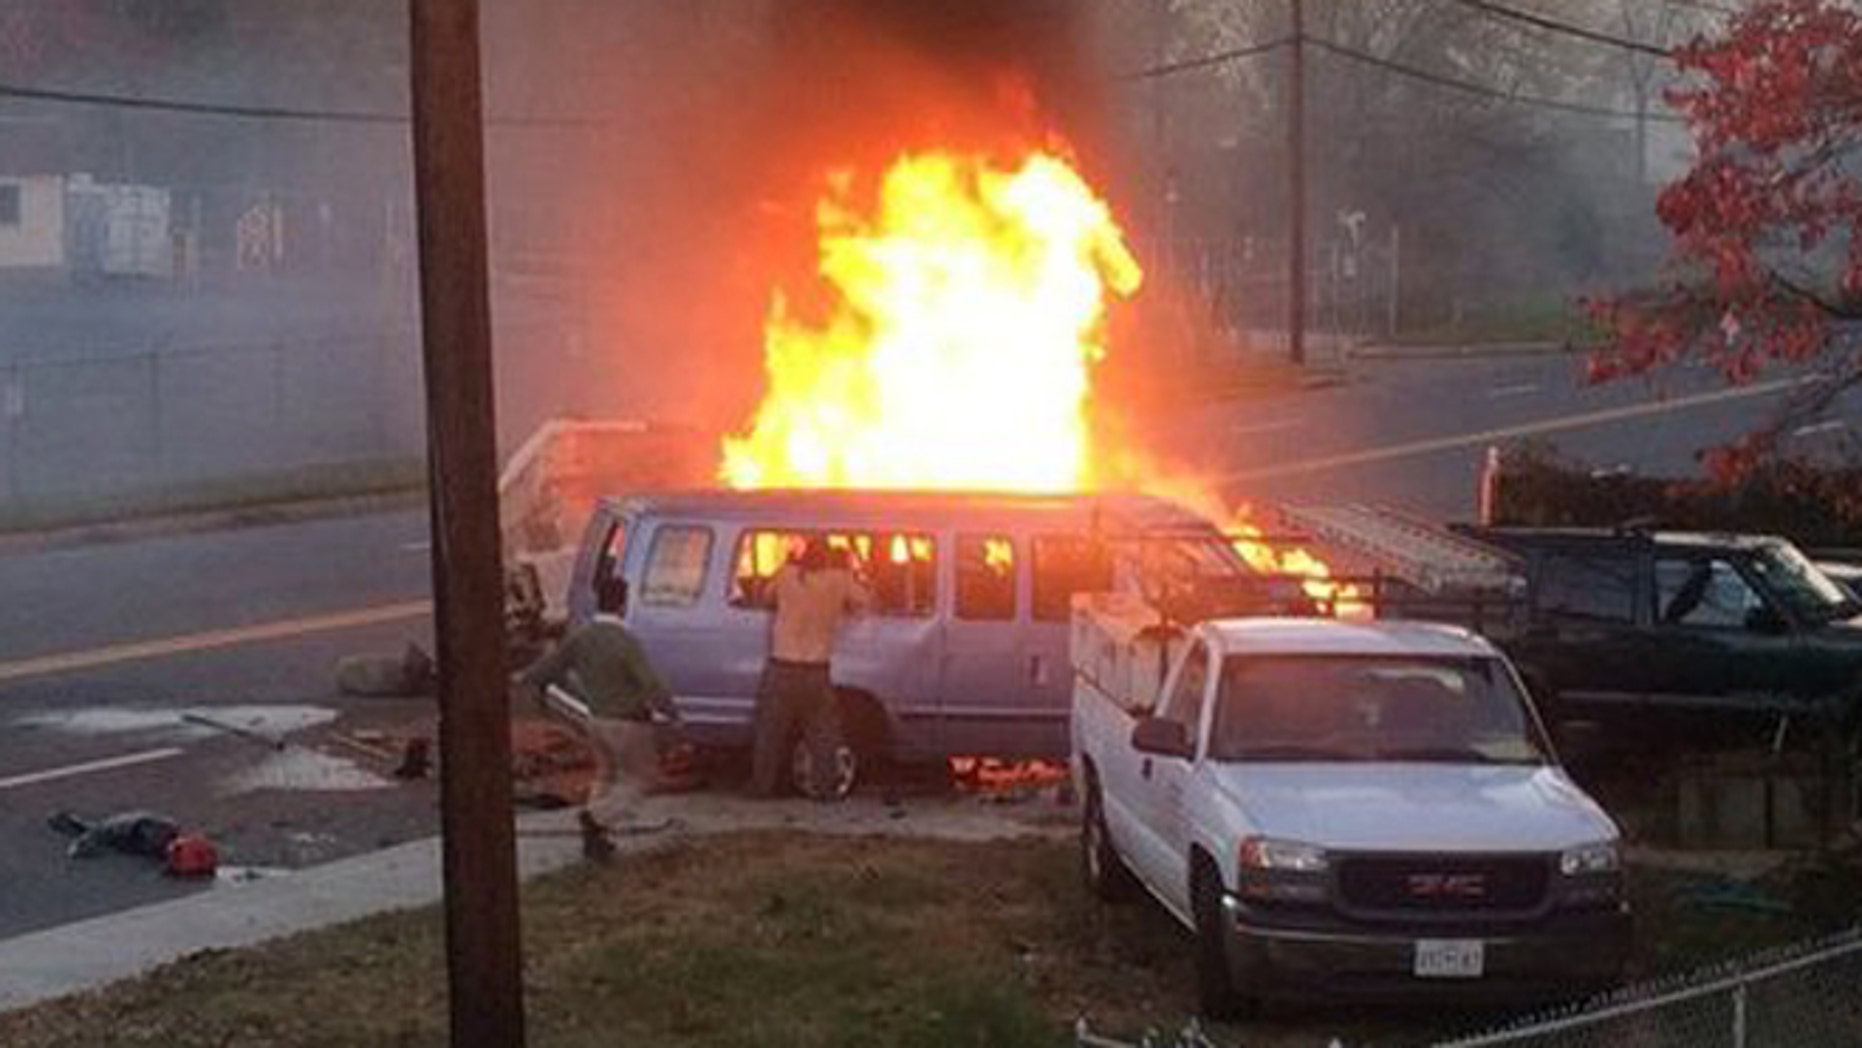 Emergency crews responded to the scene of an accident in Hyattsville, Maryland on Sunday evening.